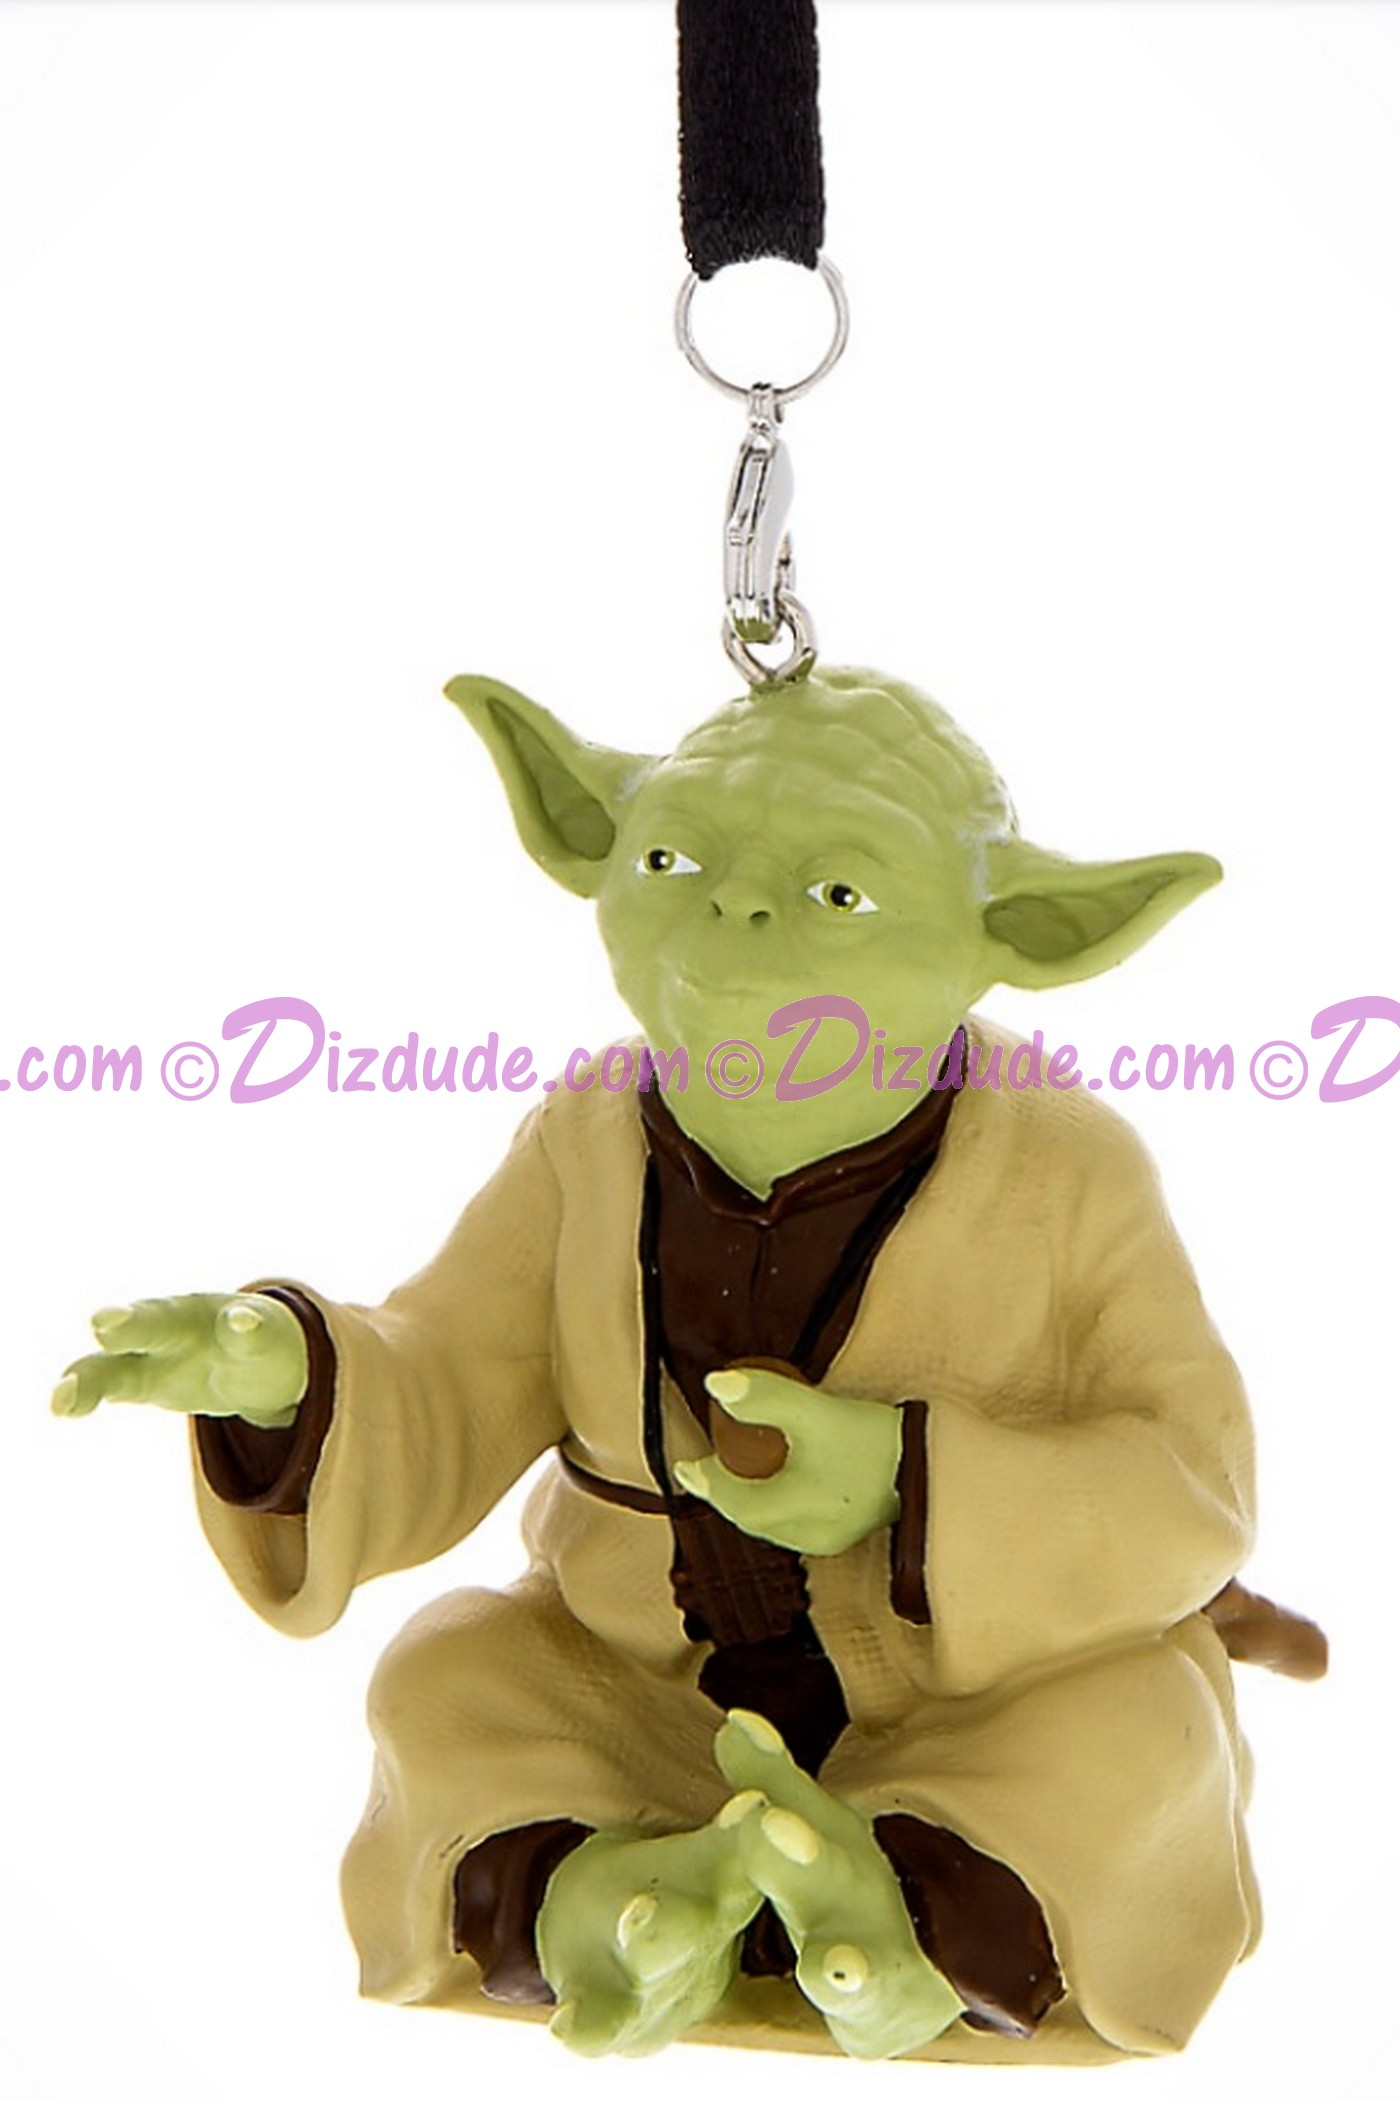 Jedi Master Yoda 3D Christmas Ornament - Disney Star Wars © Dizdude.com